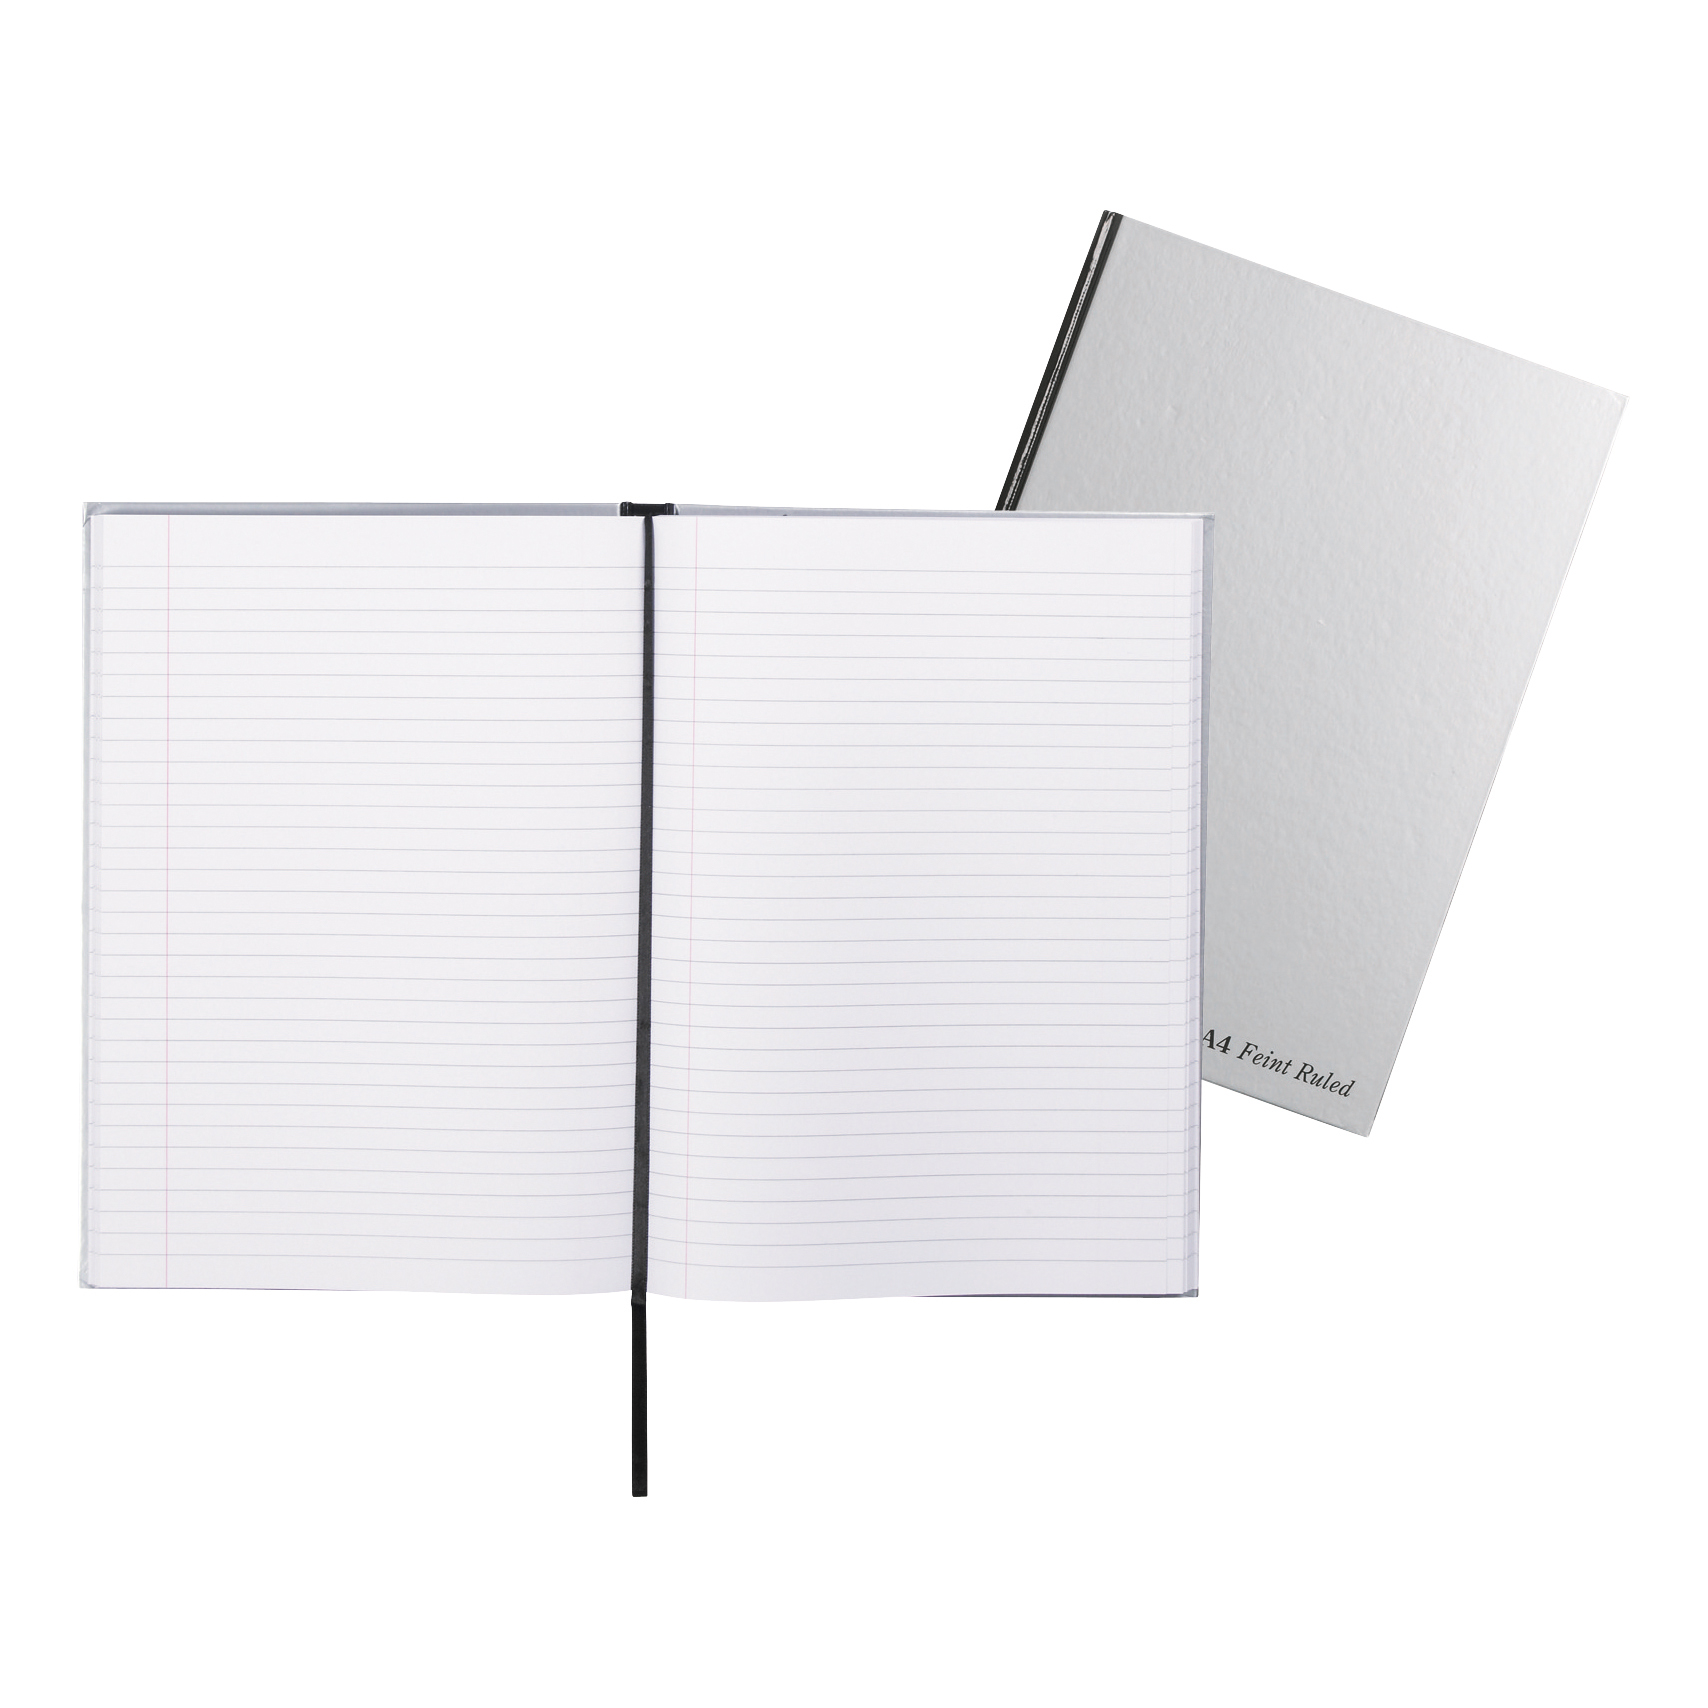 Pukka Pad Notebook Casebound Hardback 90gsm Ruled Margin 192pp A4 Silver Ref RULA4 Pack 5